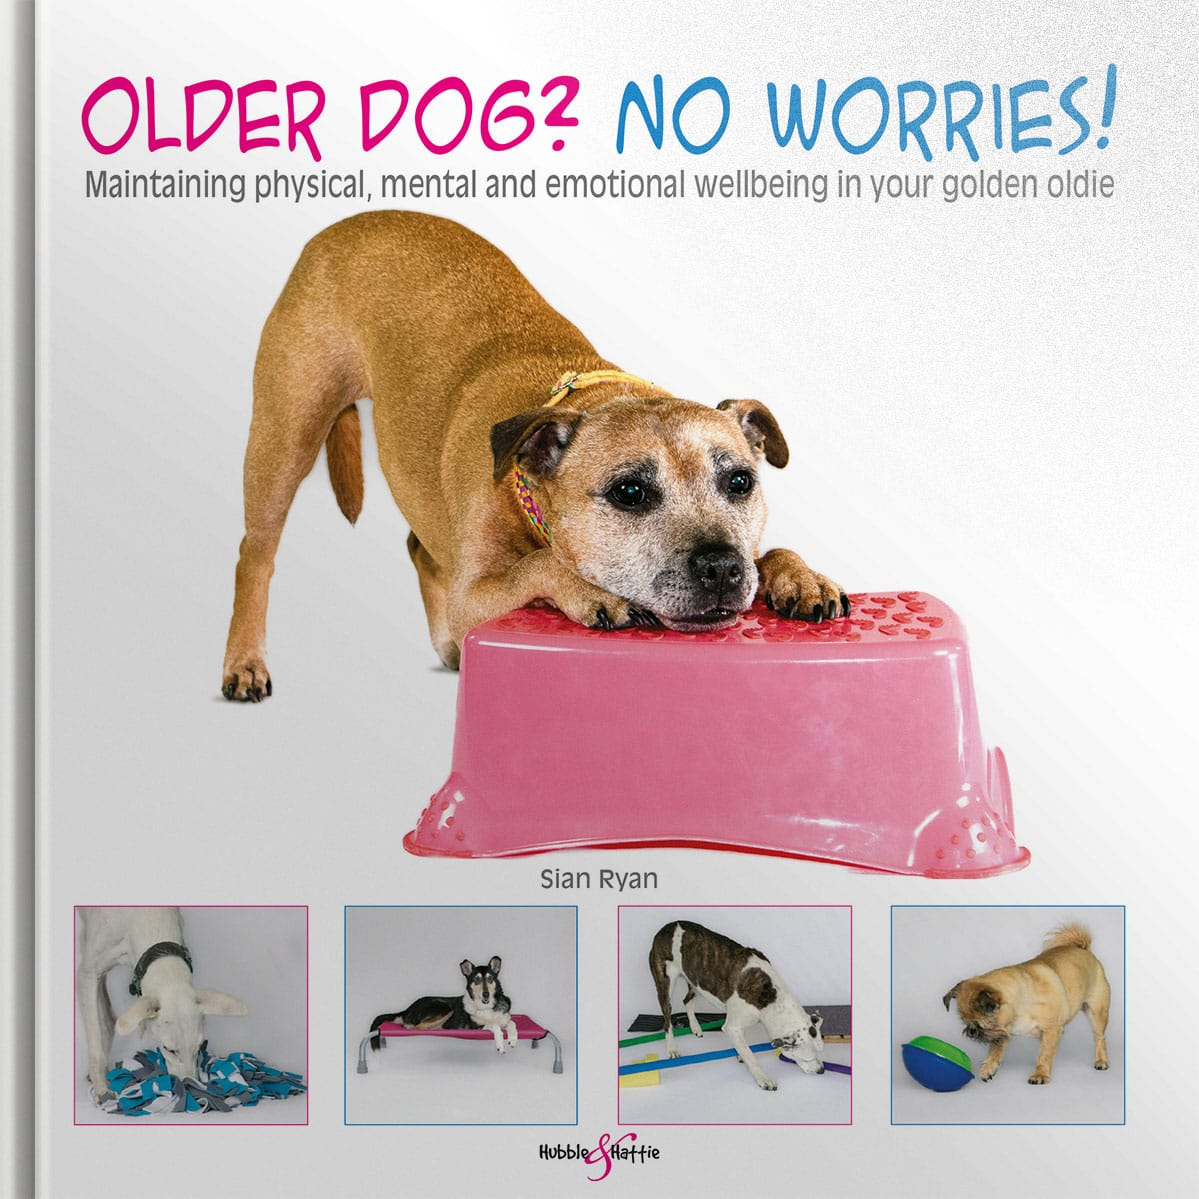 Older dog? No worries! –Maintaining physical, mental and emotional wellbeing in your golden oldie